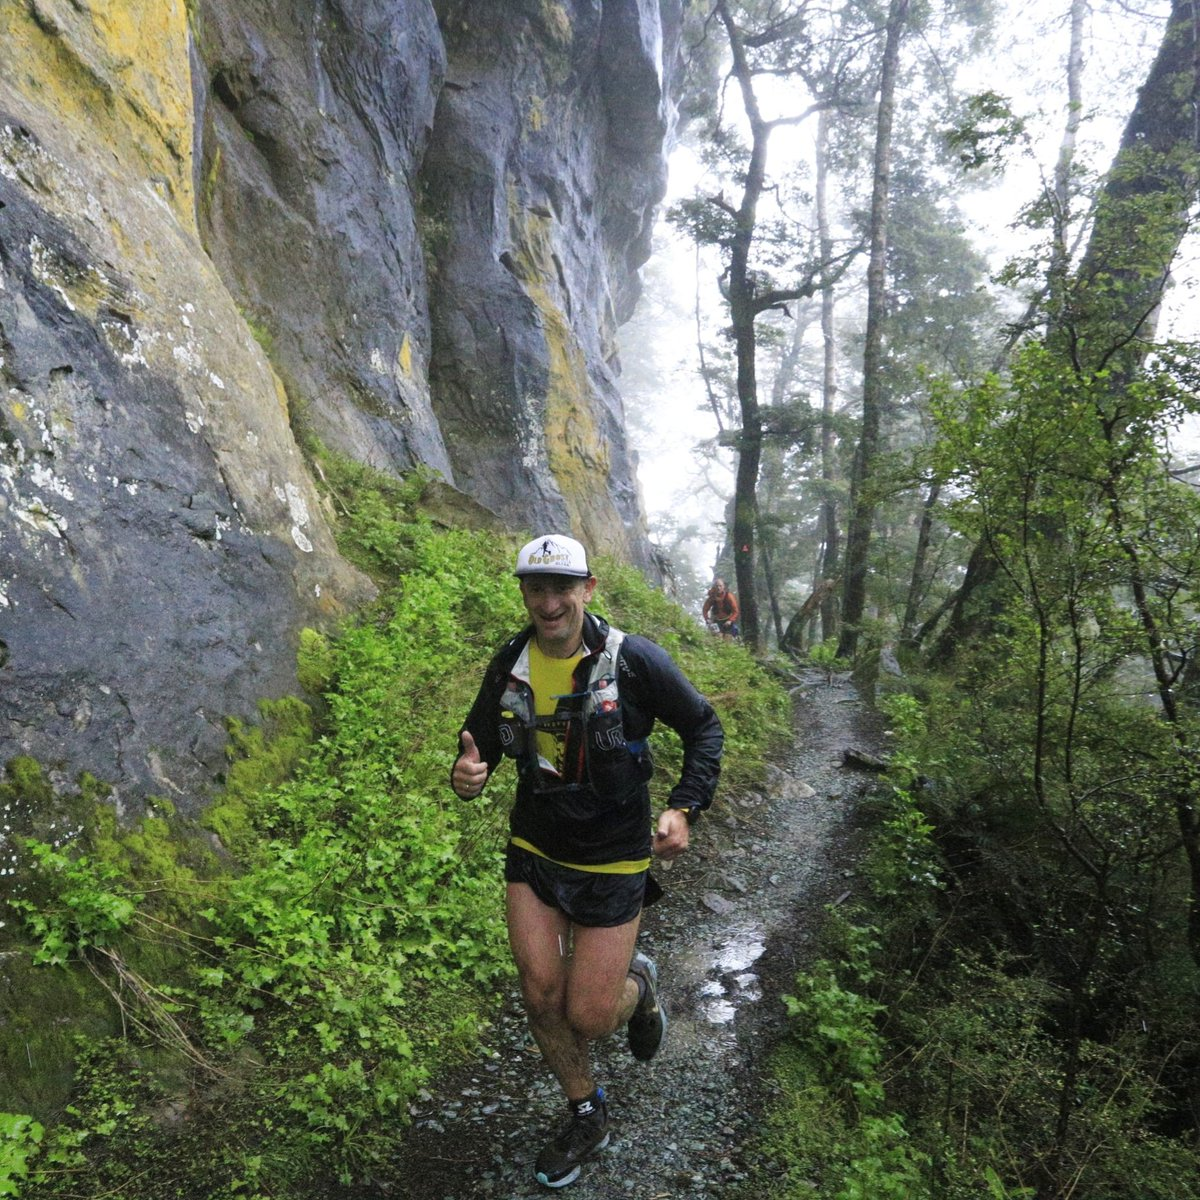 What's not to love about a casual run in some of the most beautiful places on earth?  Excuse the next few days of trail porn from the amazing @KeplerChallenge and thanks to the incredible skills of the Photos4Sale team.  https://www.instagram.com/p/B51w_aYAG65/?igshid=vyfbbe47lw08…pic.twitter.com/jZg0jdXXhi